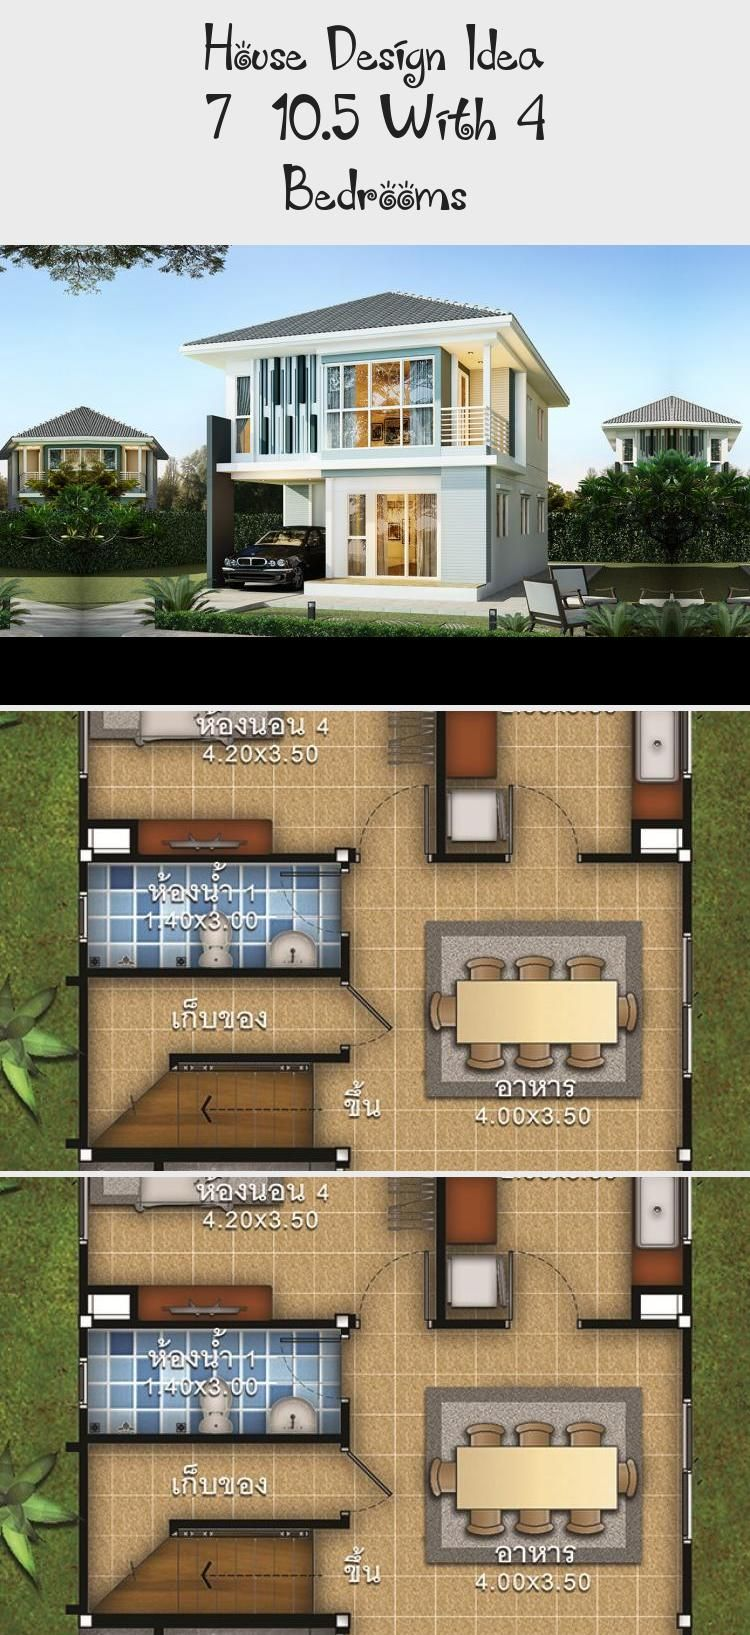 House Design Idea 7 10 5 With 4 Bedrooms Ruby S Blog In 2020 House Design Country House Plans House Styles